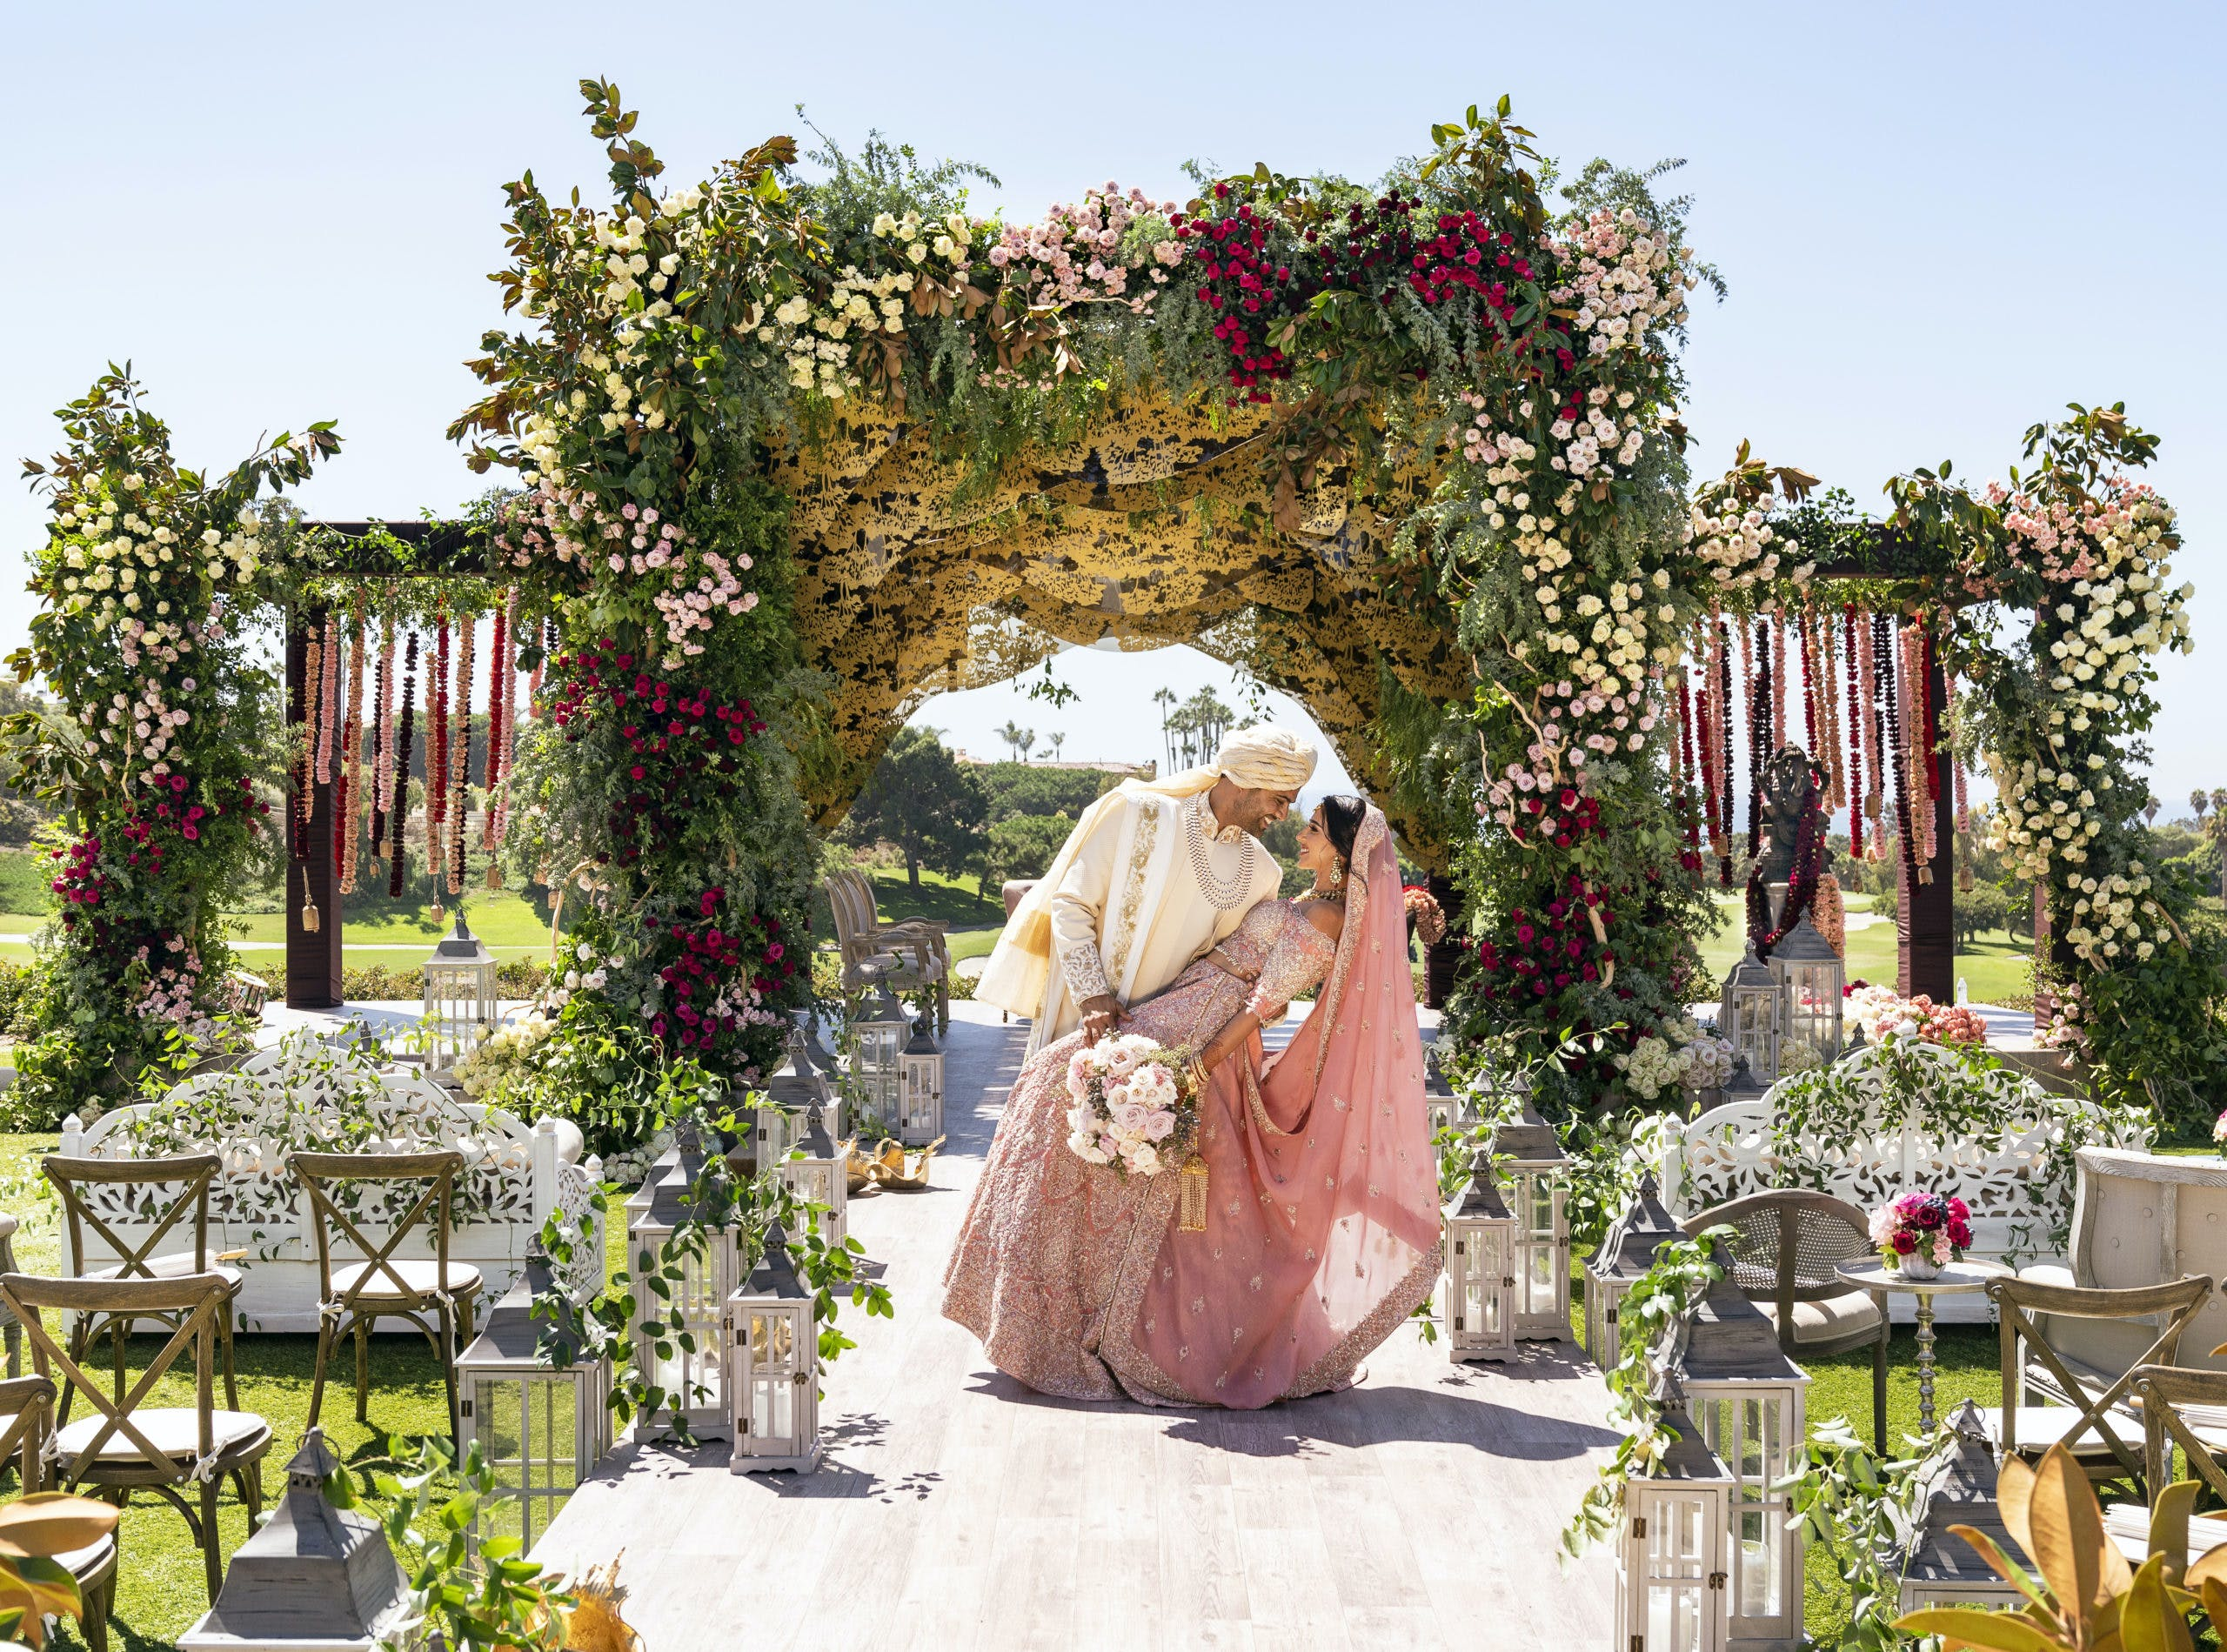 Groom dipping bride at traditional Indian wedding with colorful florals and greenery backdrop   PartySlate